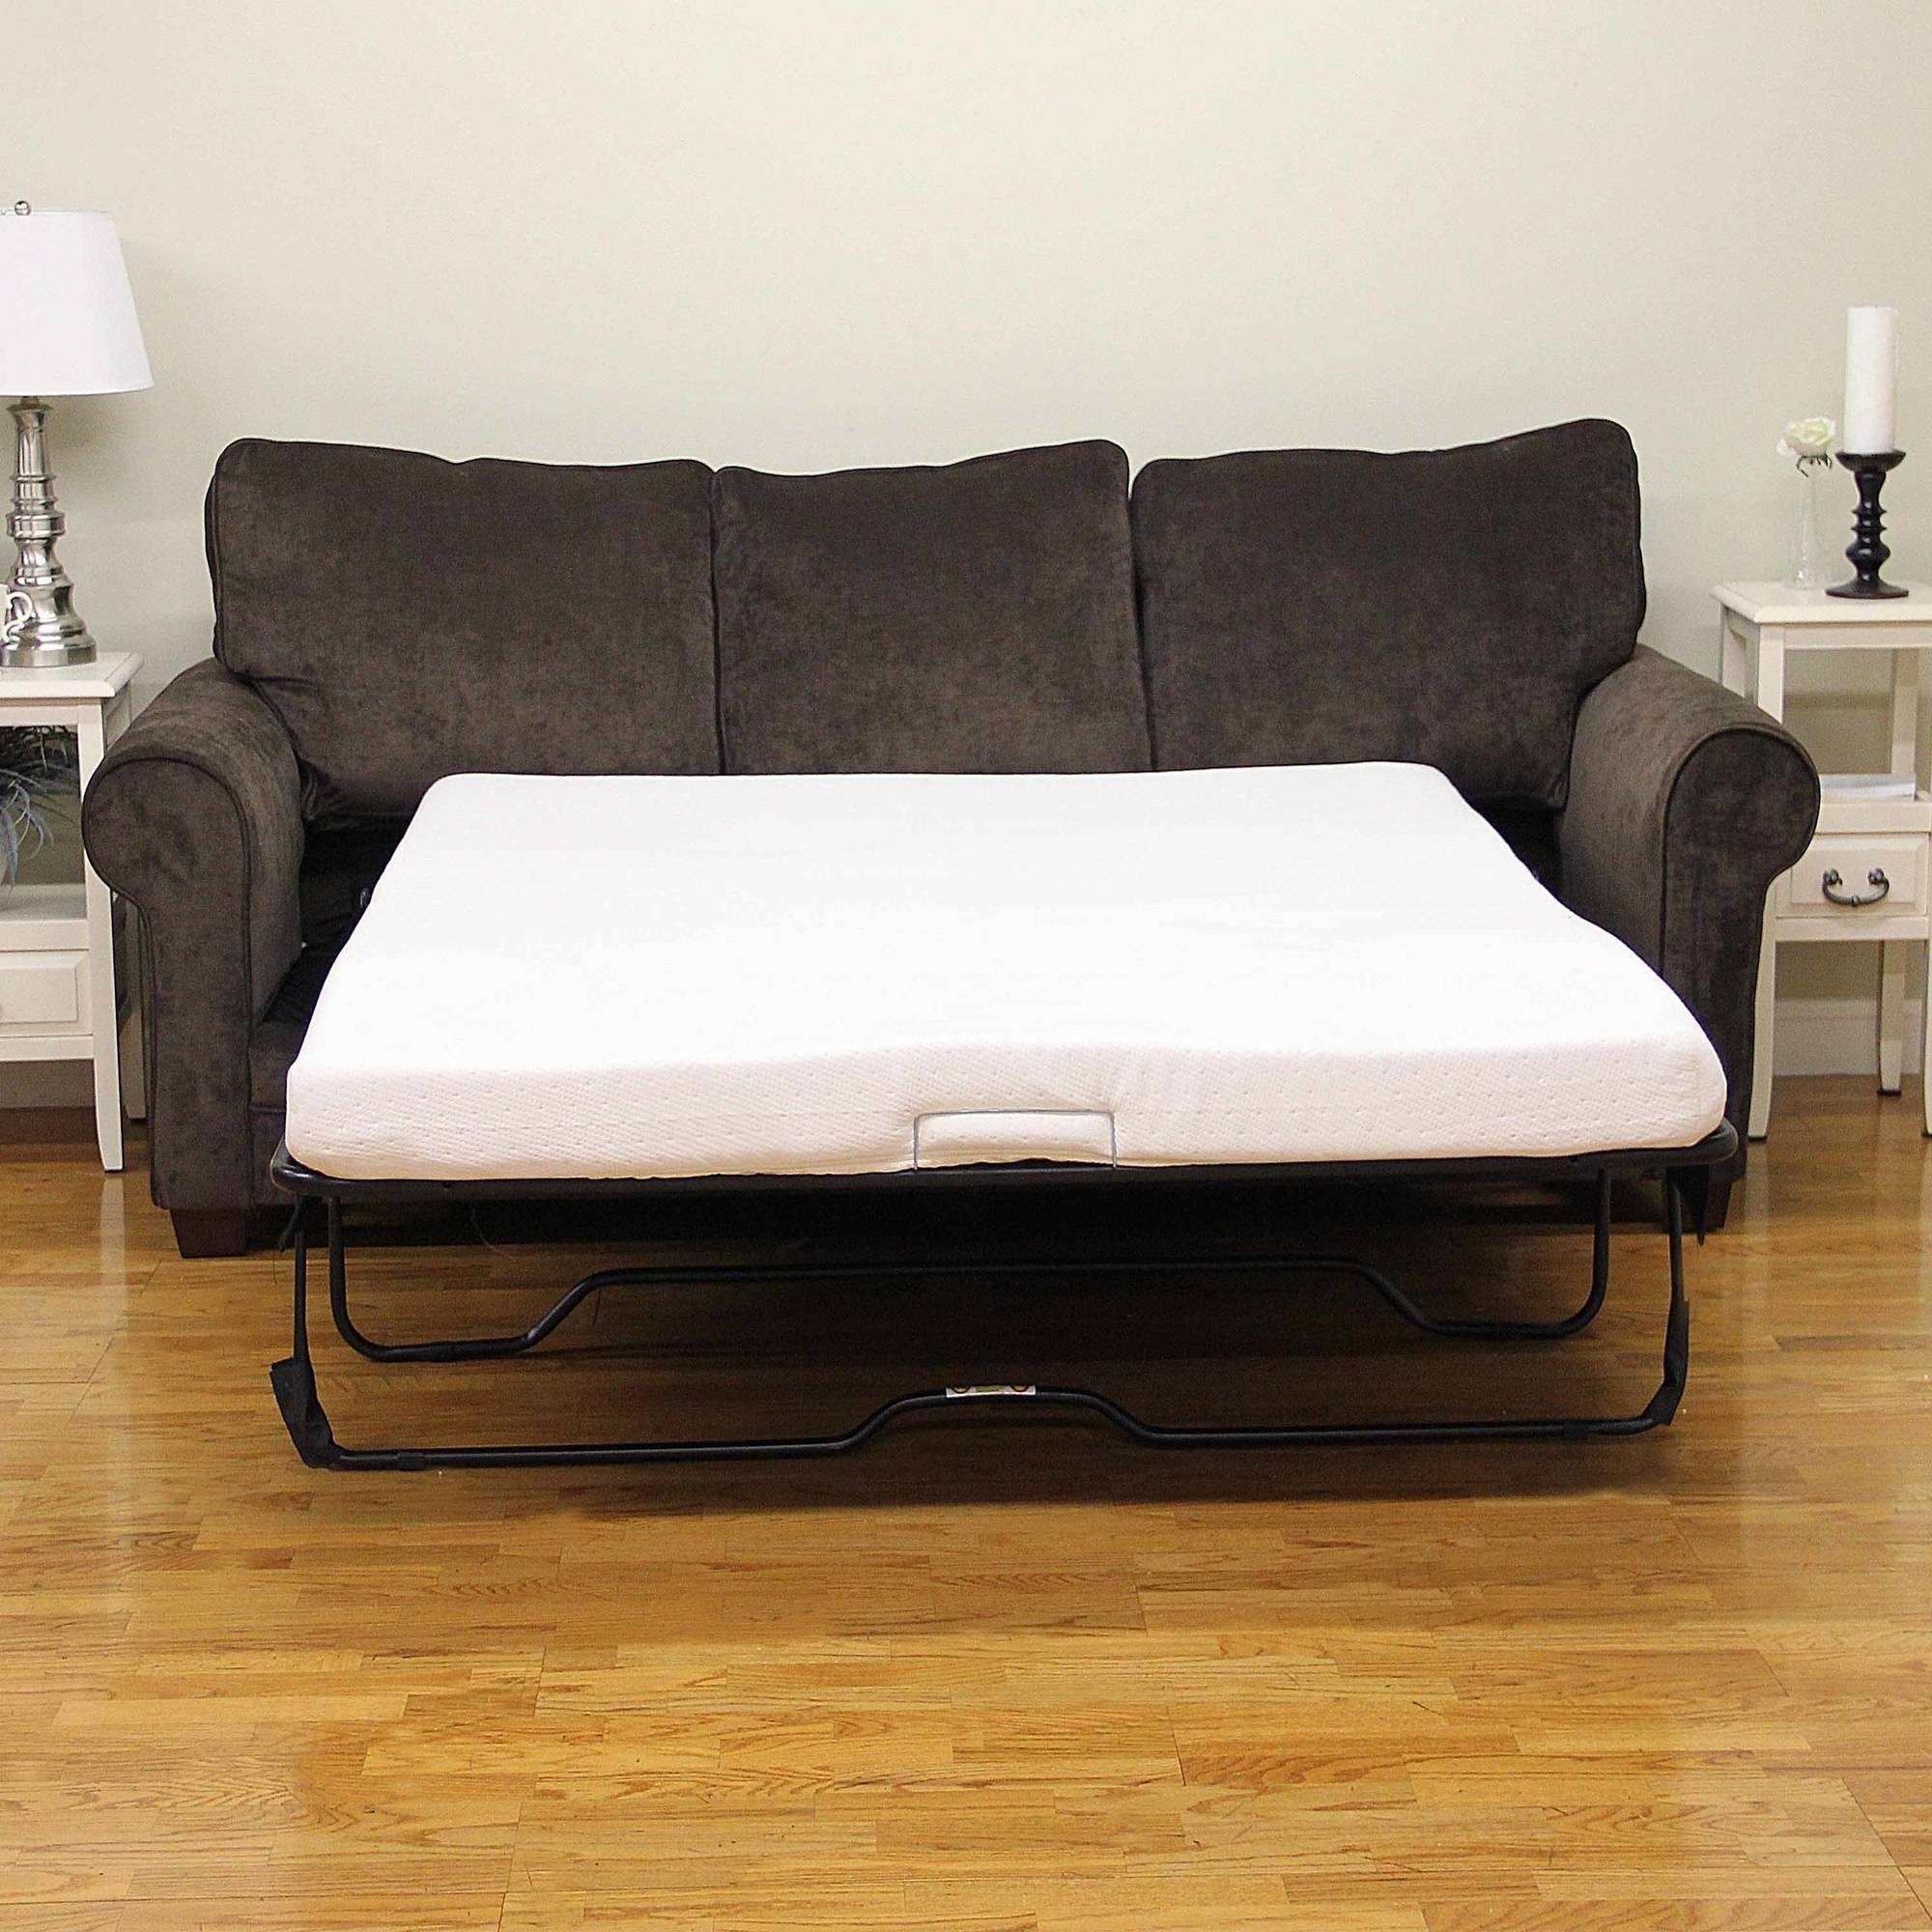 "Modern Sleep Memory Foam 4.5"" Sofa Bed Mattress, Multiple Sizes throughout Sofa Sleepers Queen Size (Image 12 of 30)"